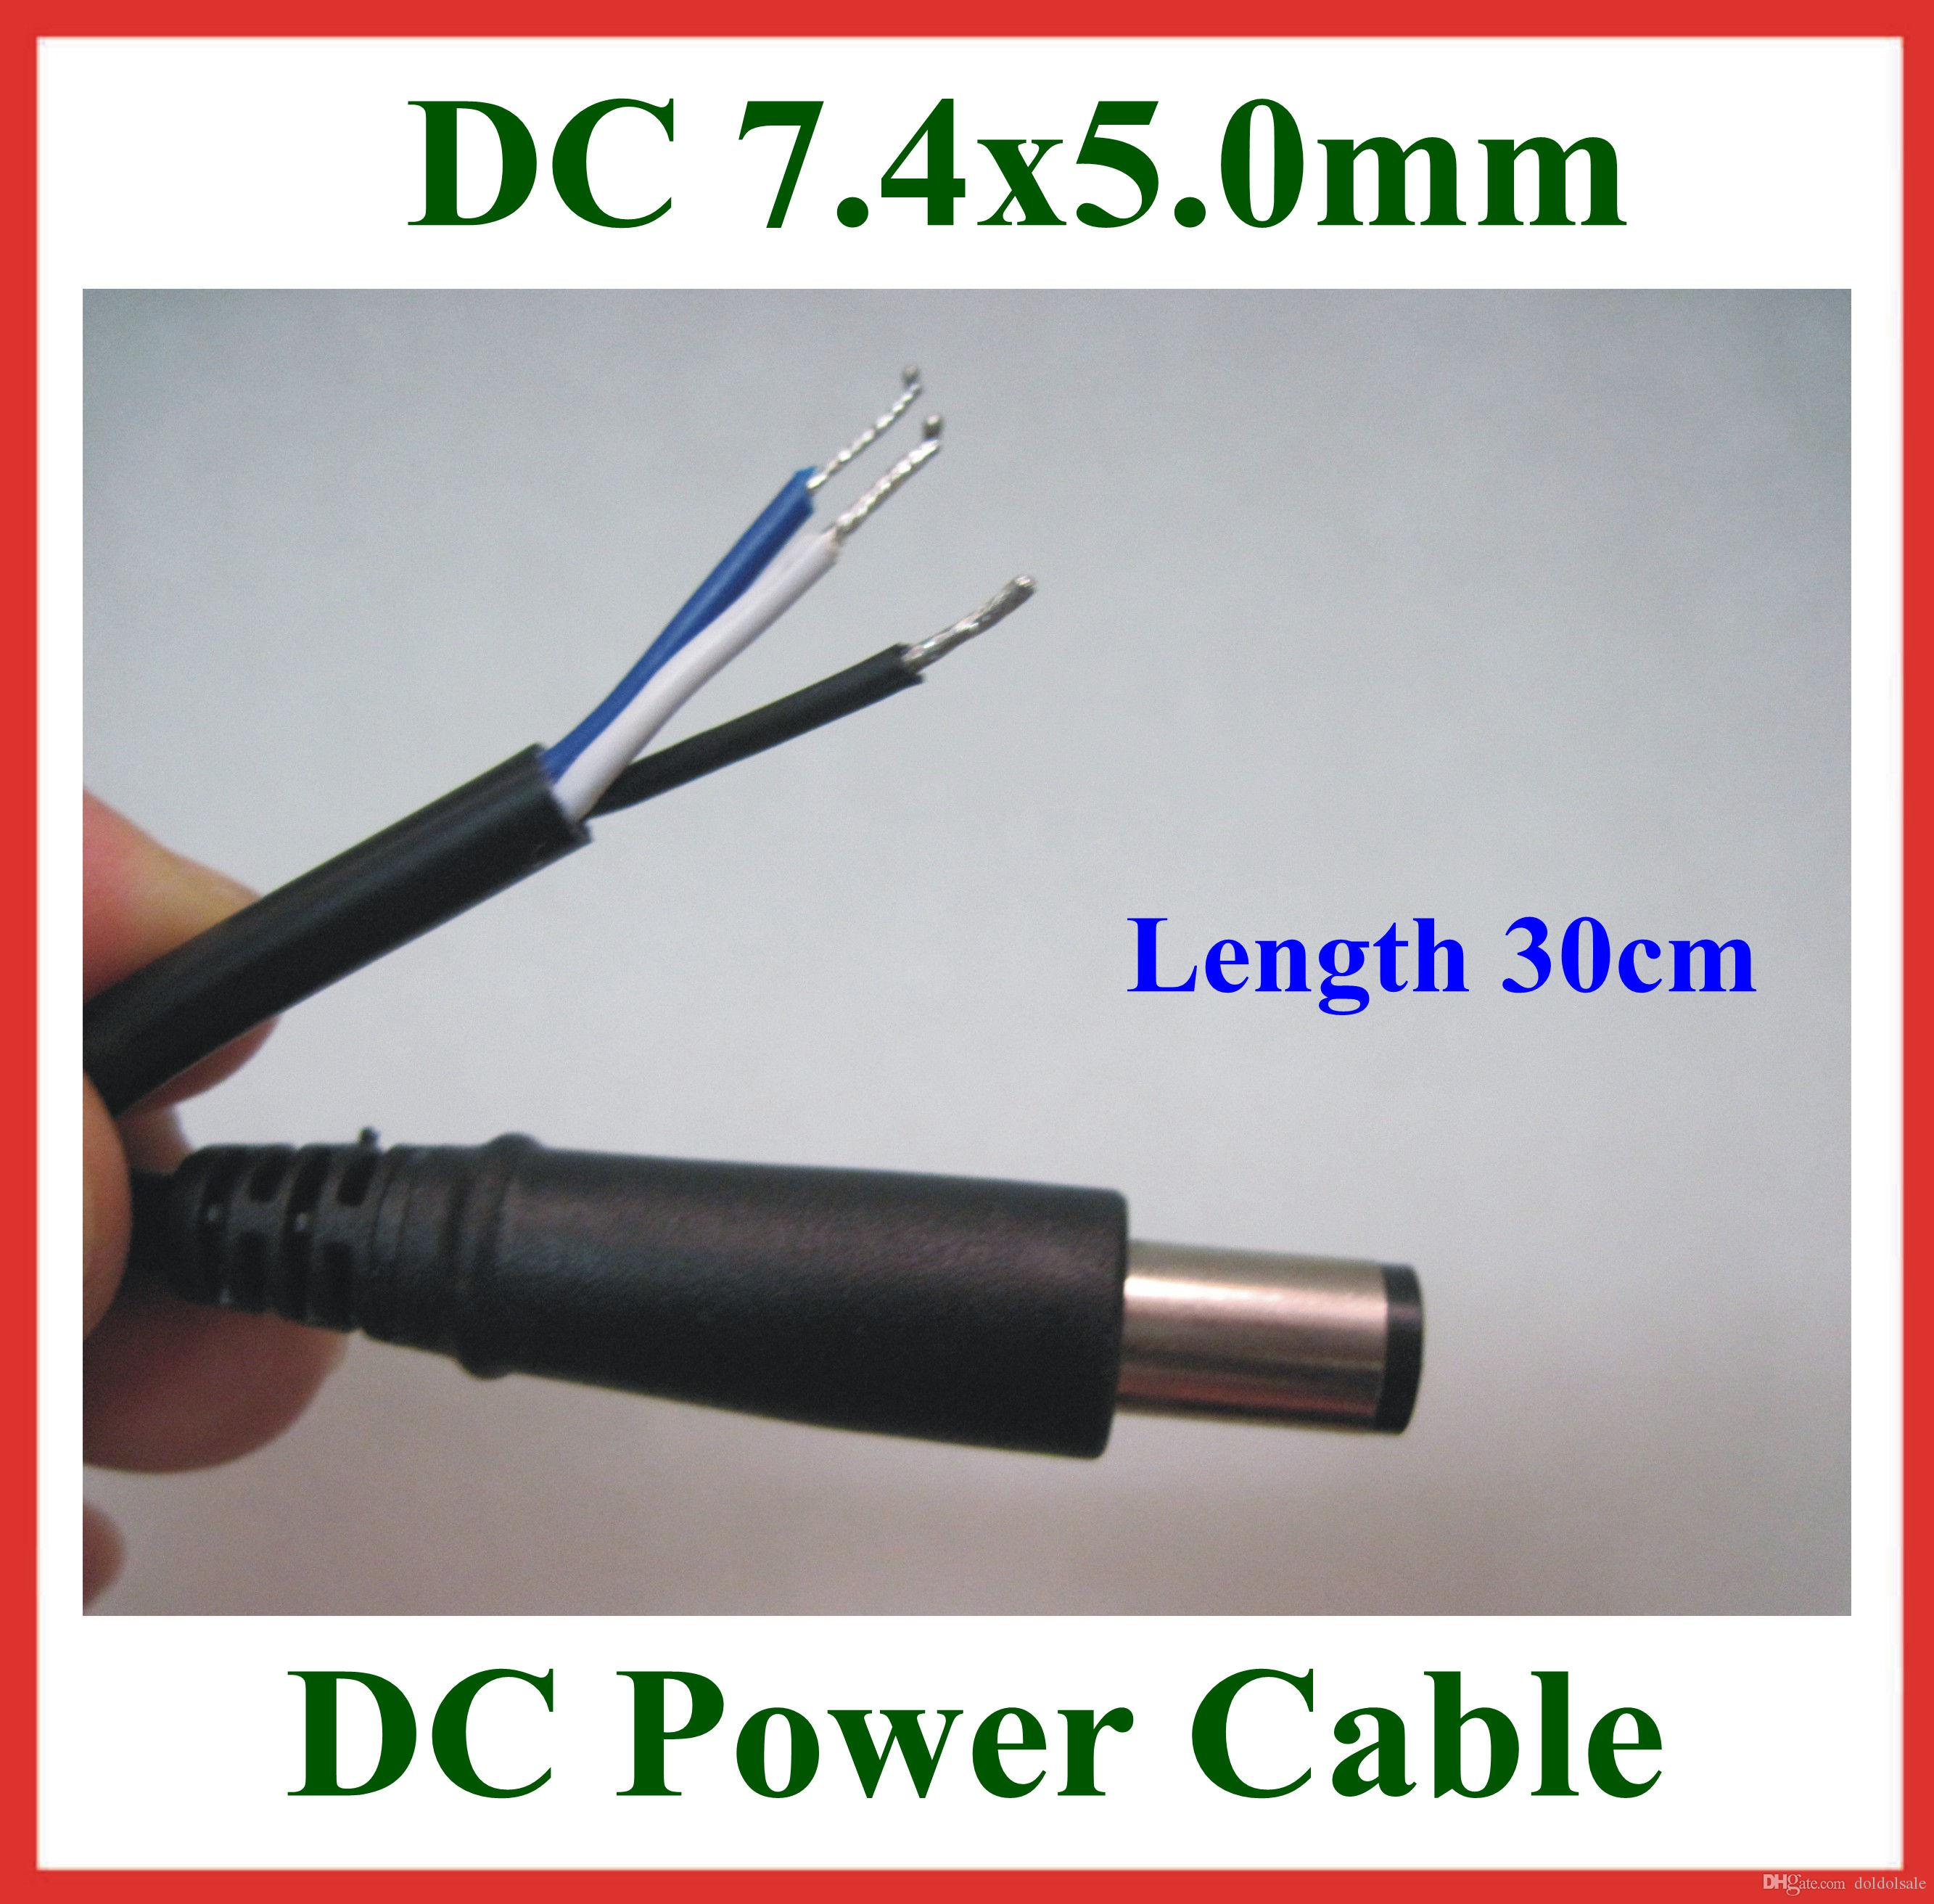 2pcs dc tip plug 7 4 5 0mm 7 4x5 0mm dc power 2018 dc tip plug 7 4*5 0mm 7 4x5 0mm dc power supply cable with hp laptop charger wire diagram at nearapp.co